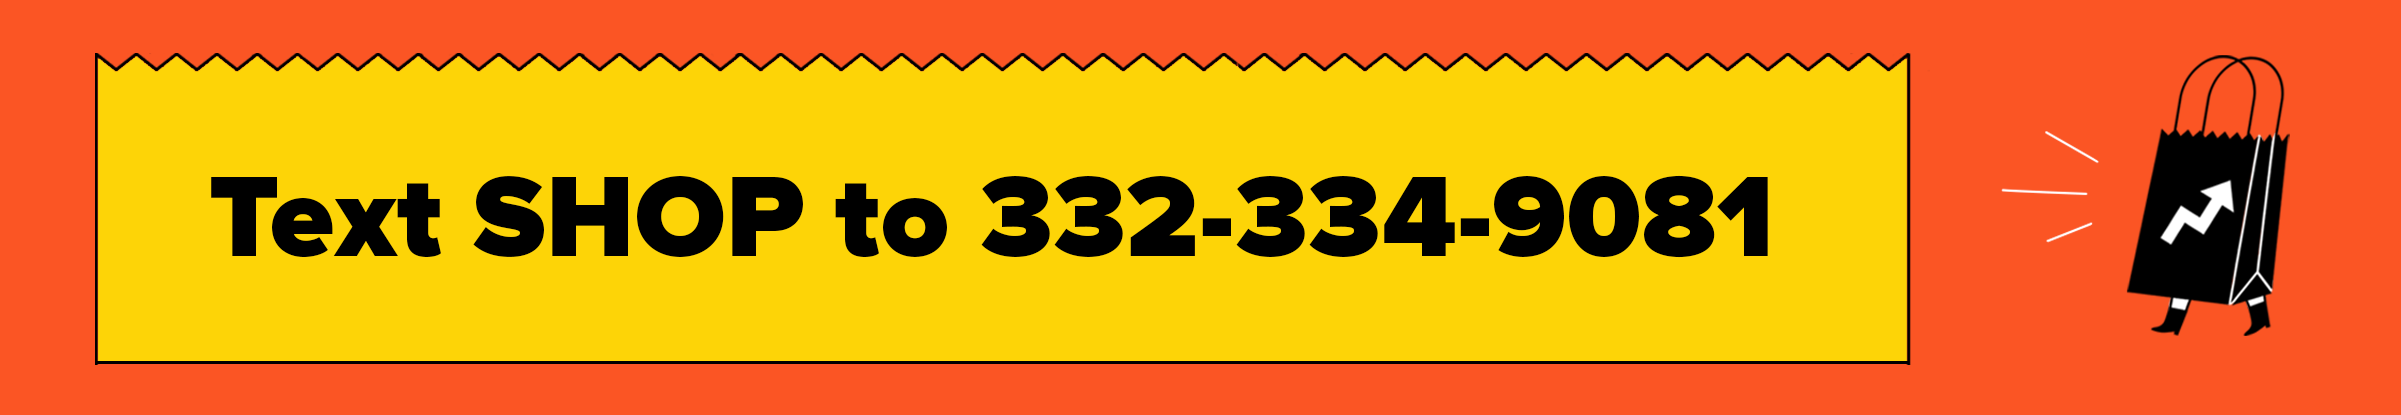 the number to text for product recommendations, 332-334-9081